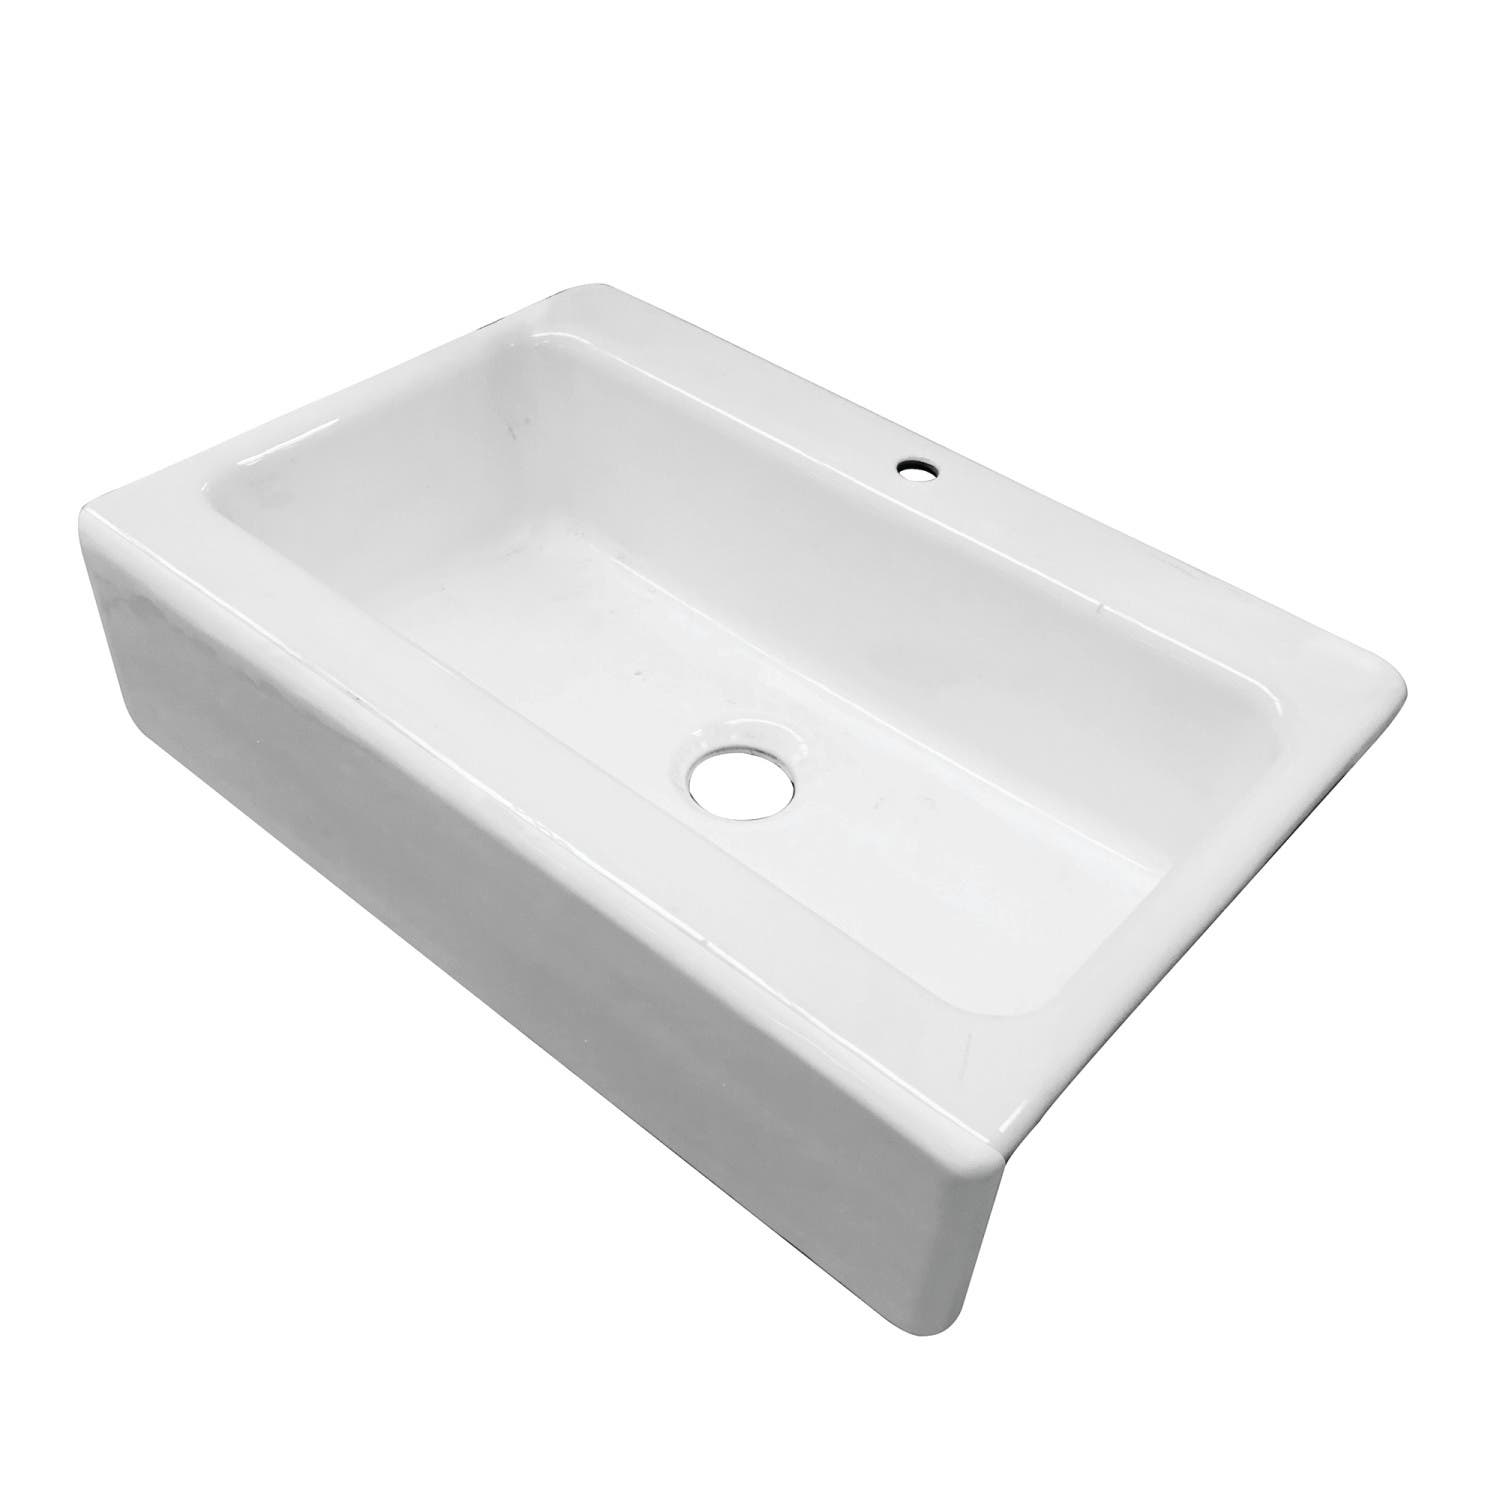 Gourmetier Gckfs33229 33x22 Single Bowl Top Mount Drop In A Front Farmhouse Sink White